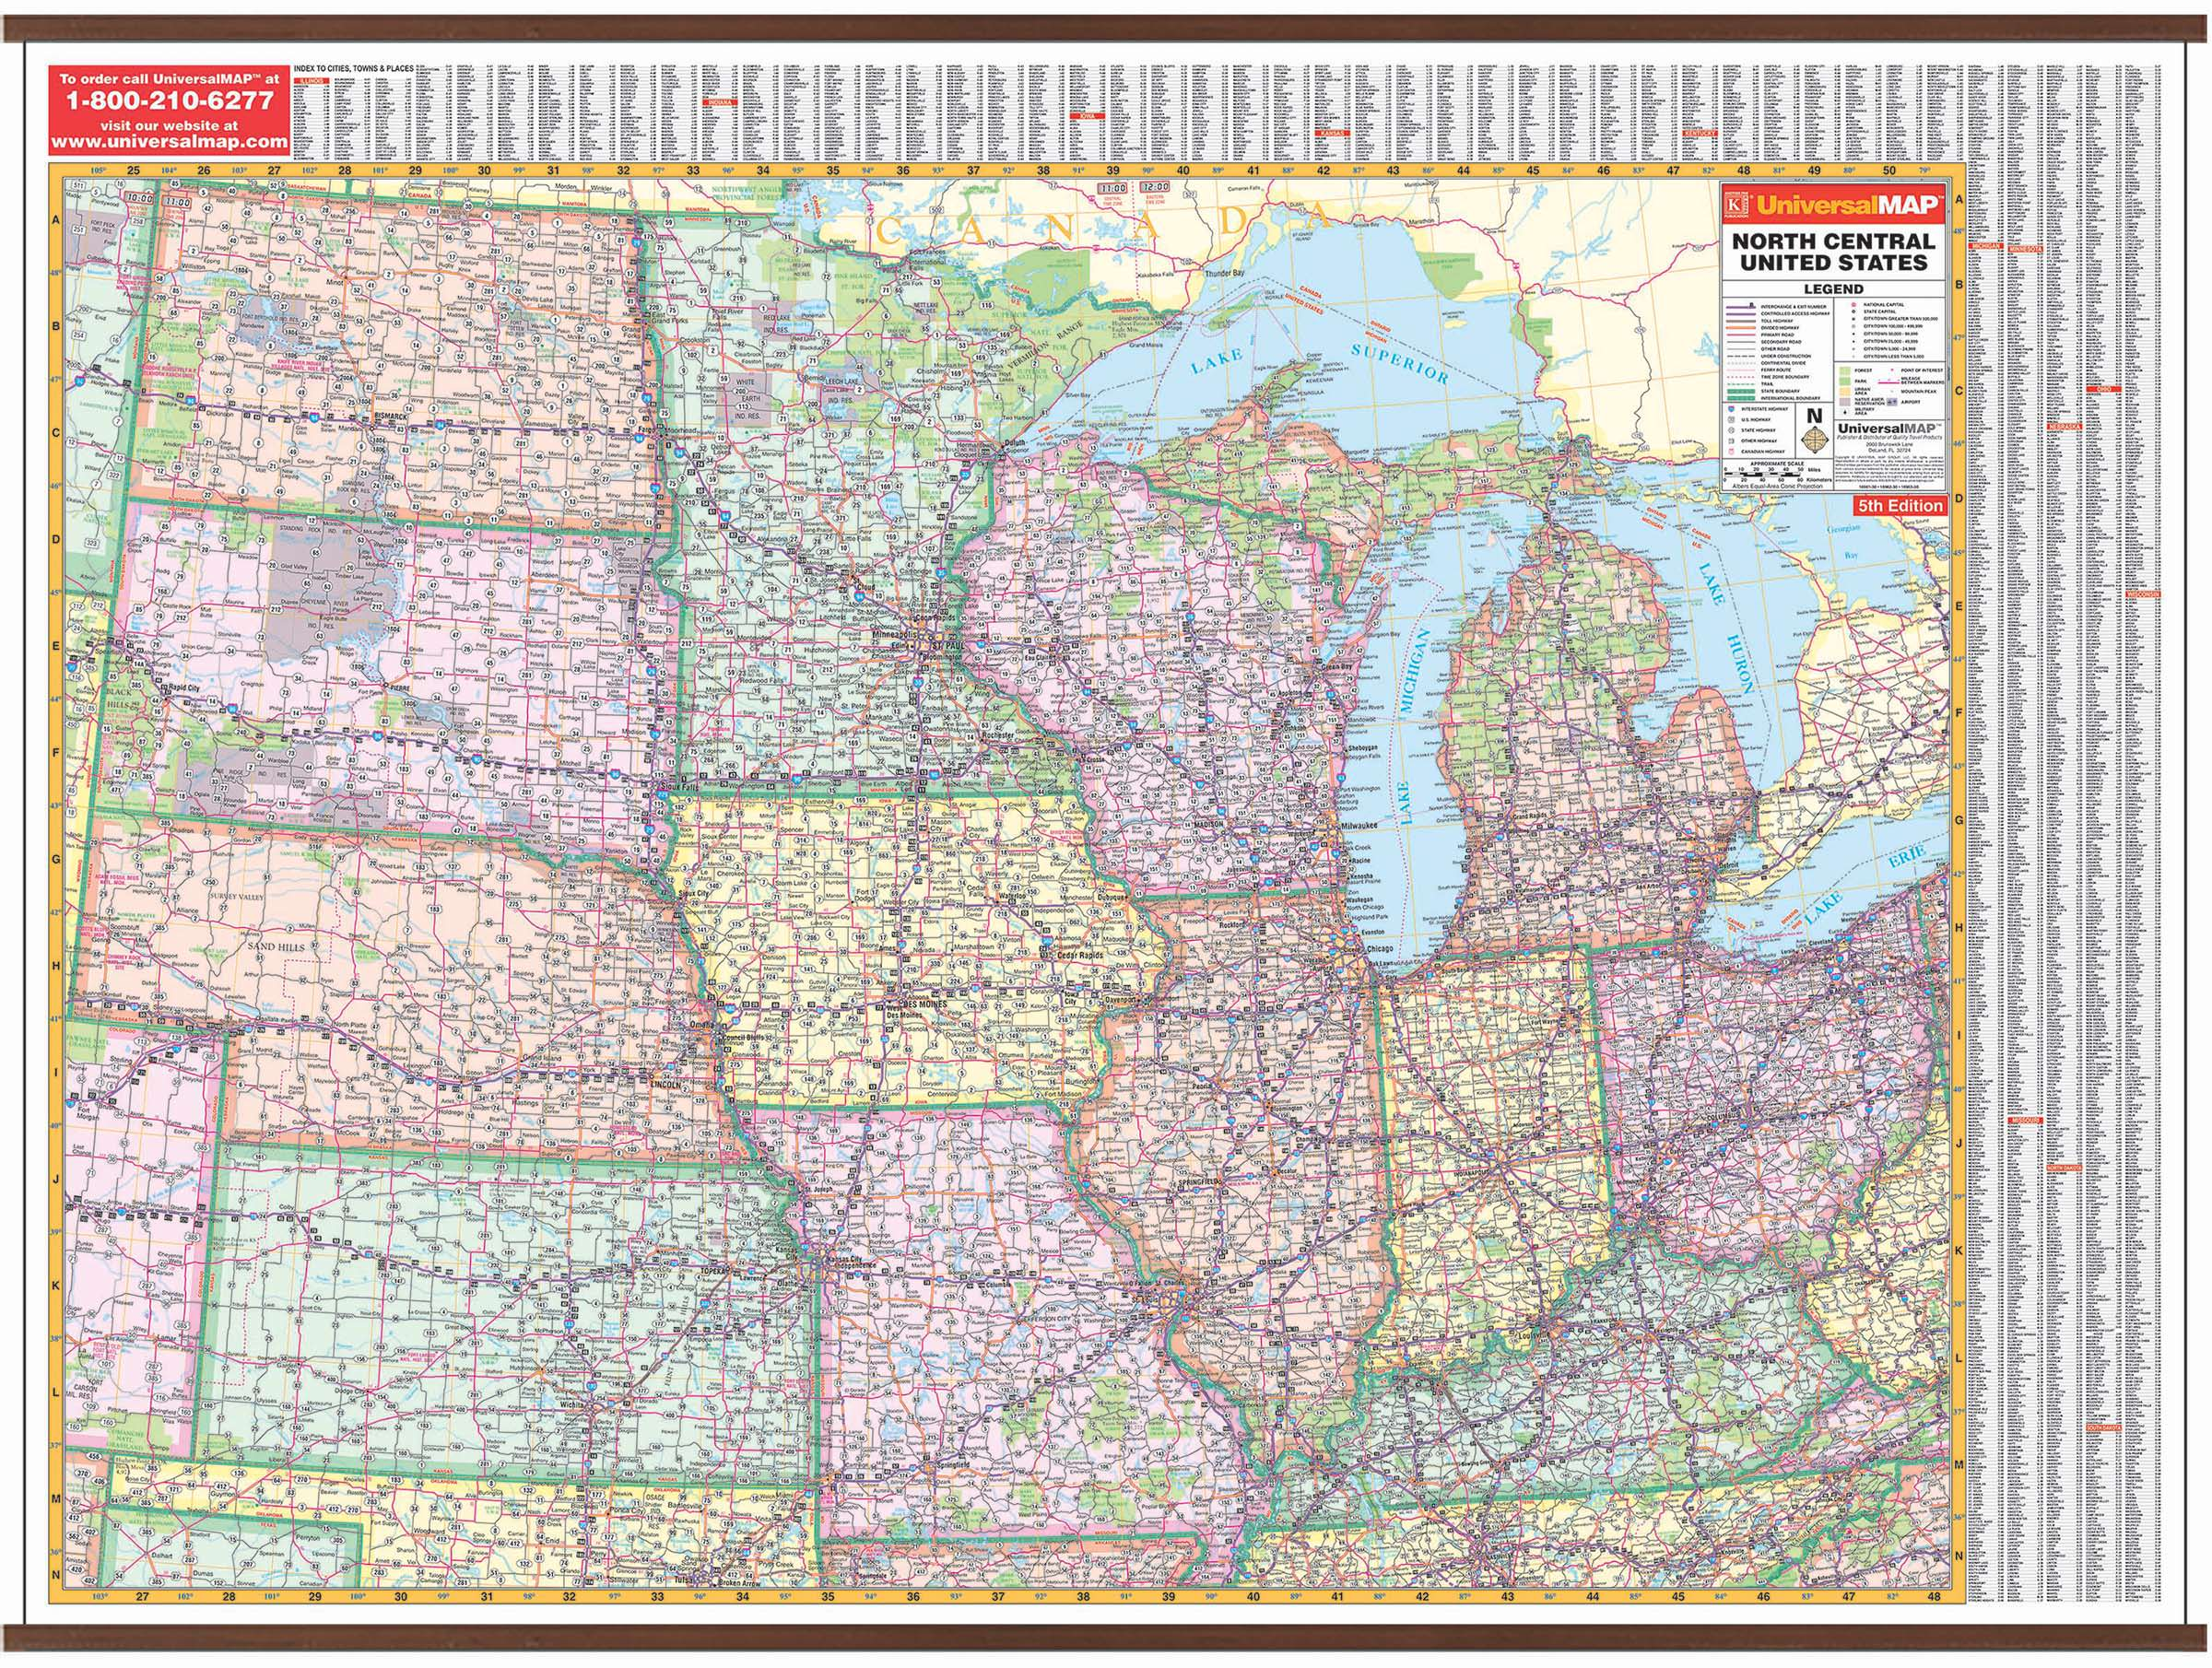 North Central Us Map.Us North Central Wall Map Kappa Map Group